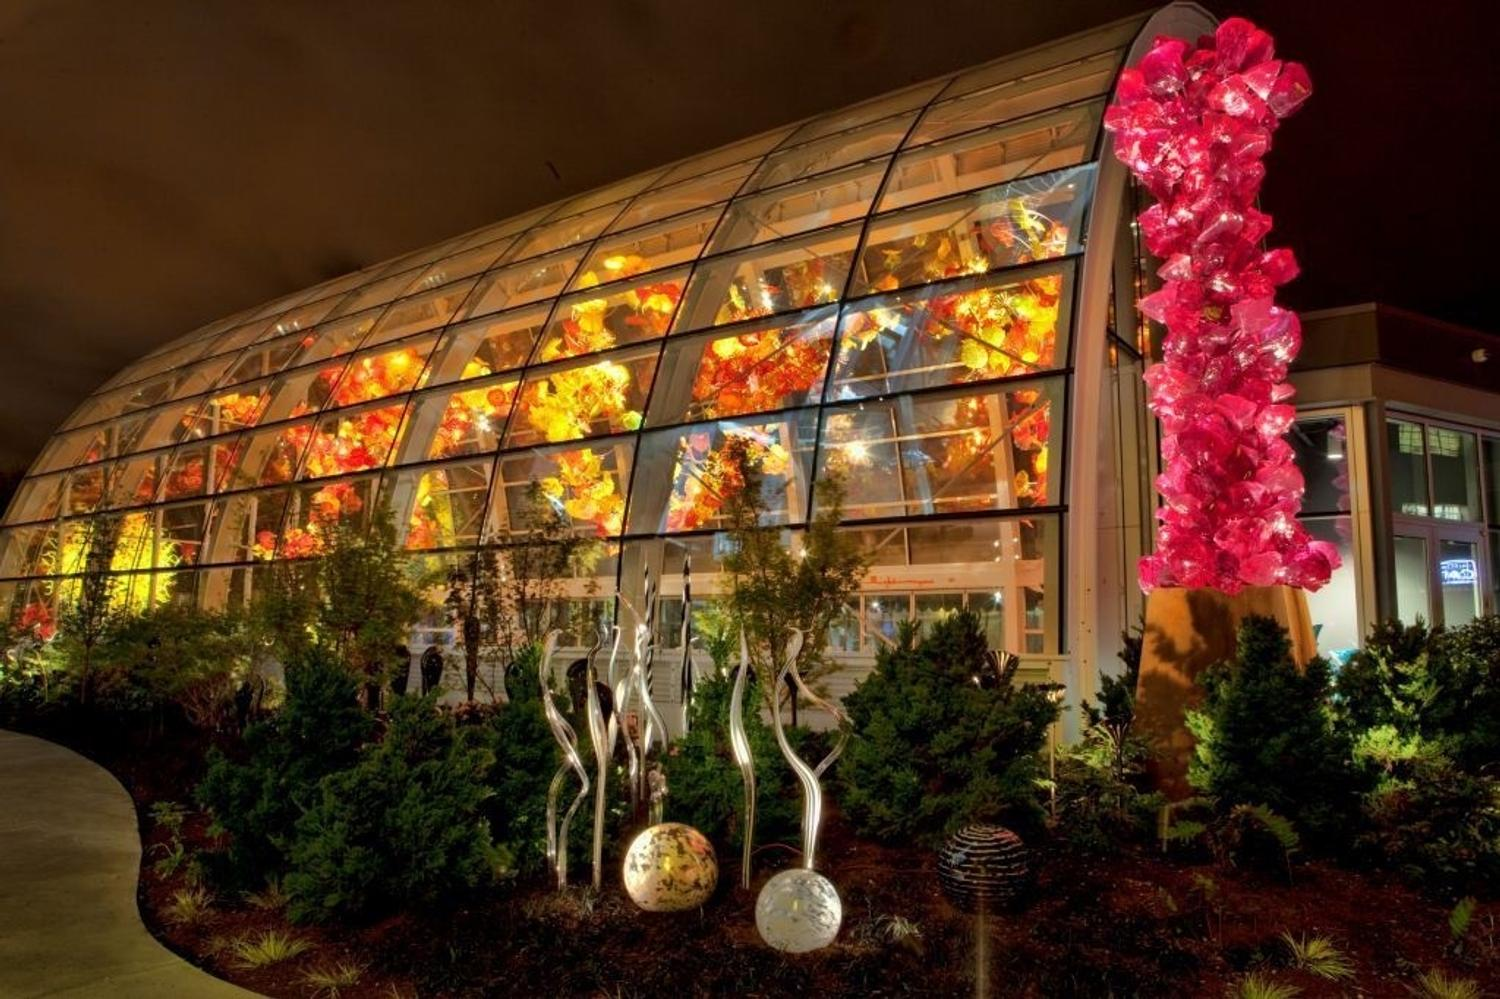 Chihuly Garden and Glass Opens in Seattle - ArtfixDaily News Feed